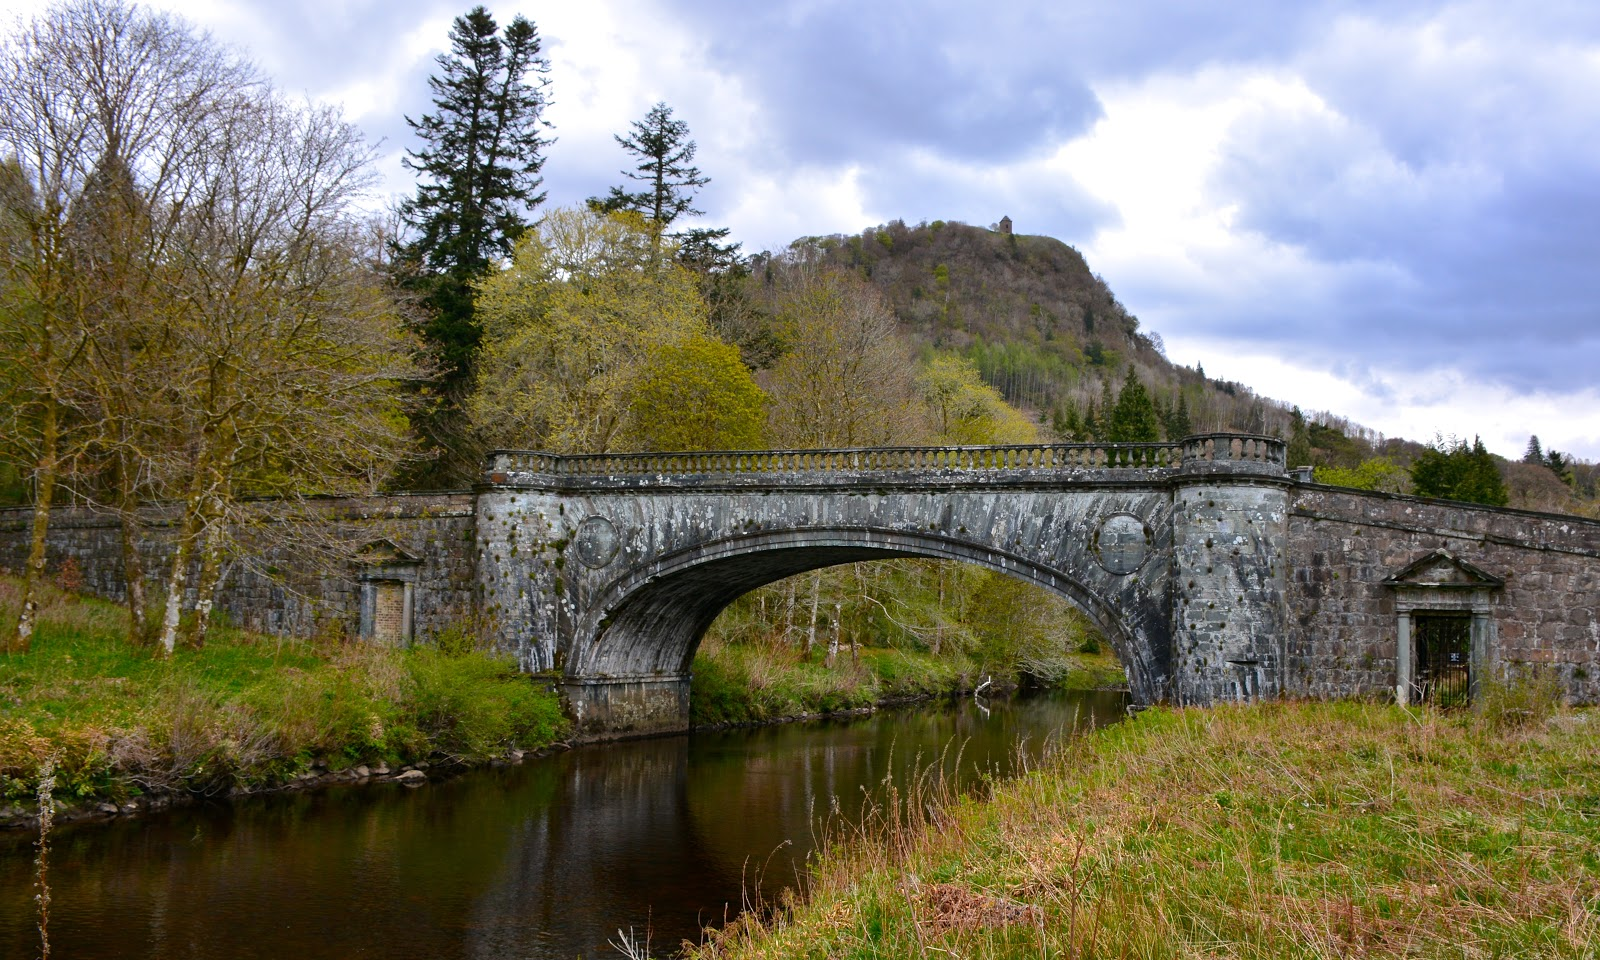 Bridge on the grounds of Inverary Castle in Argyll, Scotland